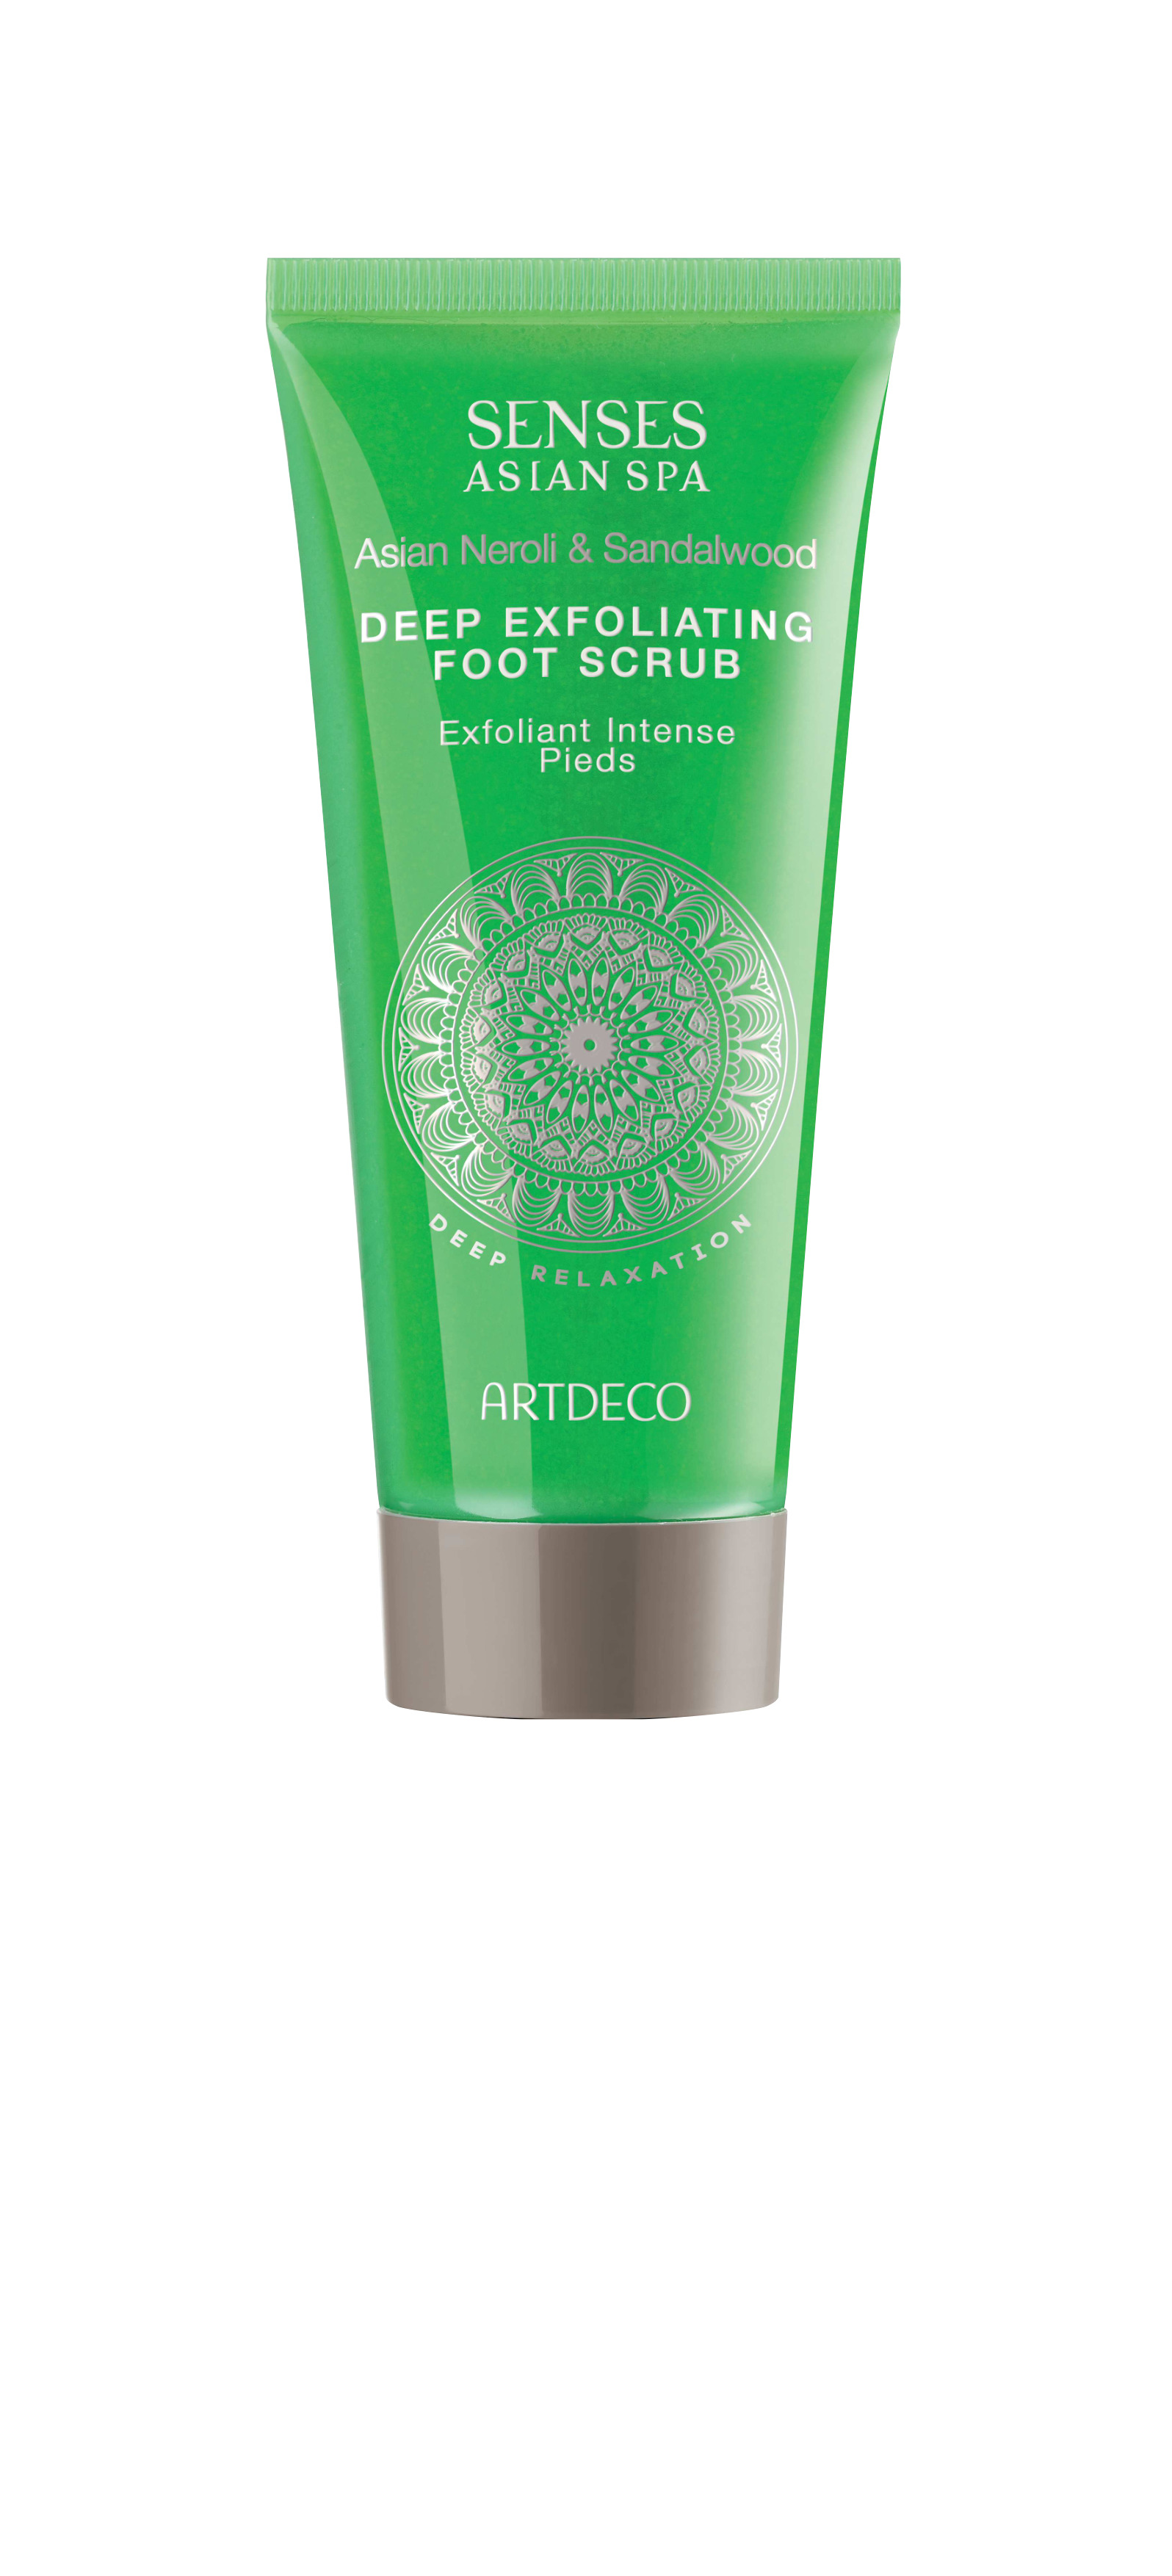 Artdeco скраб для ног глубокого действия Deep exfoliating foot scrub, deep relaxation, 100 мл скраб artdeco deep exfoliating foot scrub deep relaxation